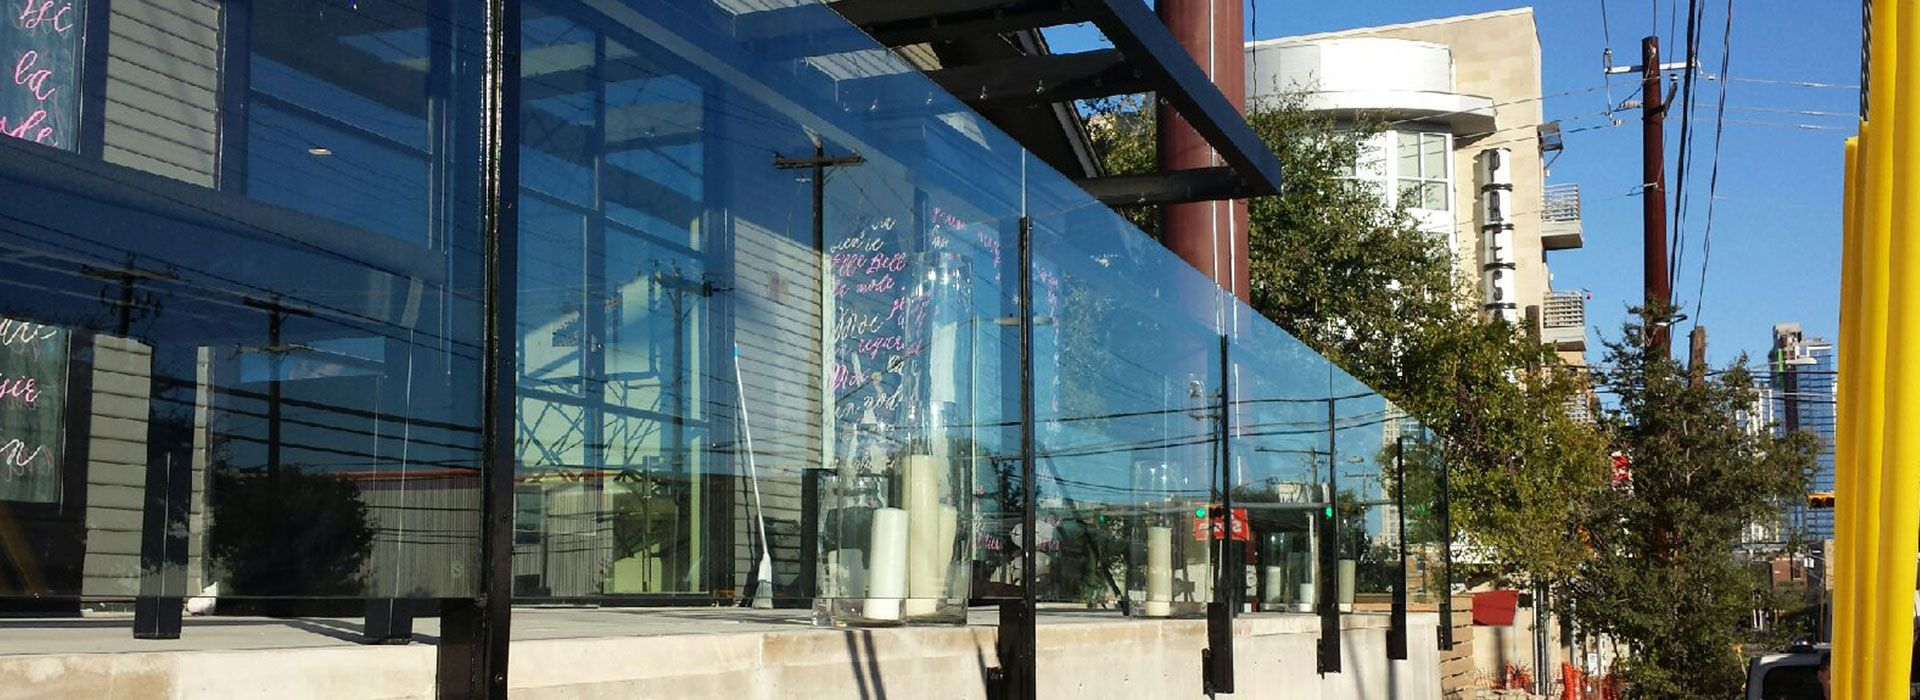 Commercial Glass Gallery | Idea Gallery | Glass Handrails | Anchor-Ventana Glass